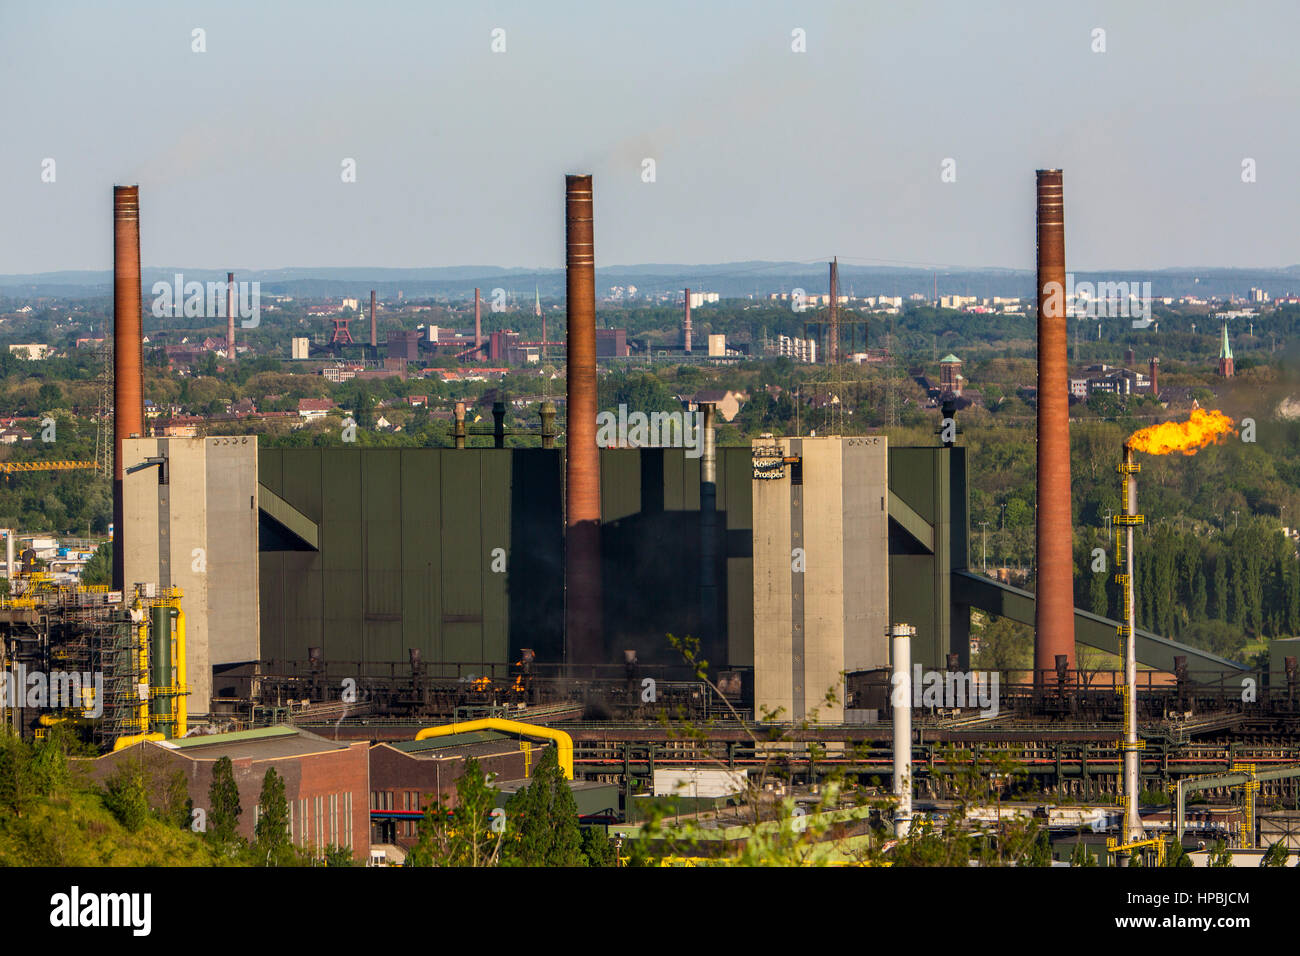 Coking plant Prosper in Bottrop, behind the coking plant Zollverein, in Essen, front roof of the ski hall Bottrop - Stock Image